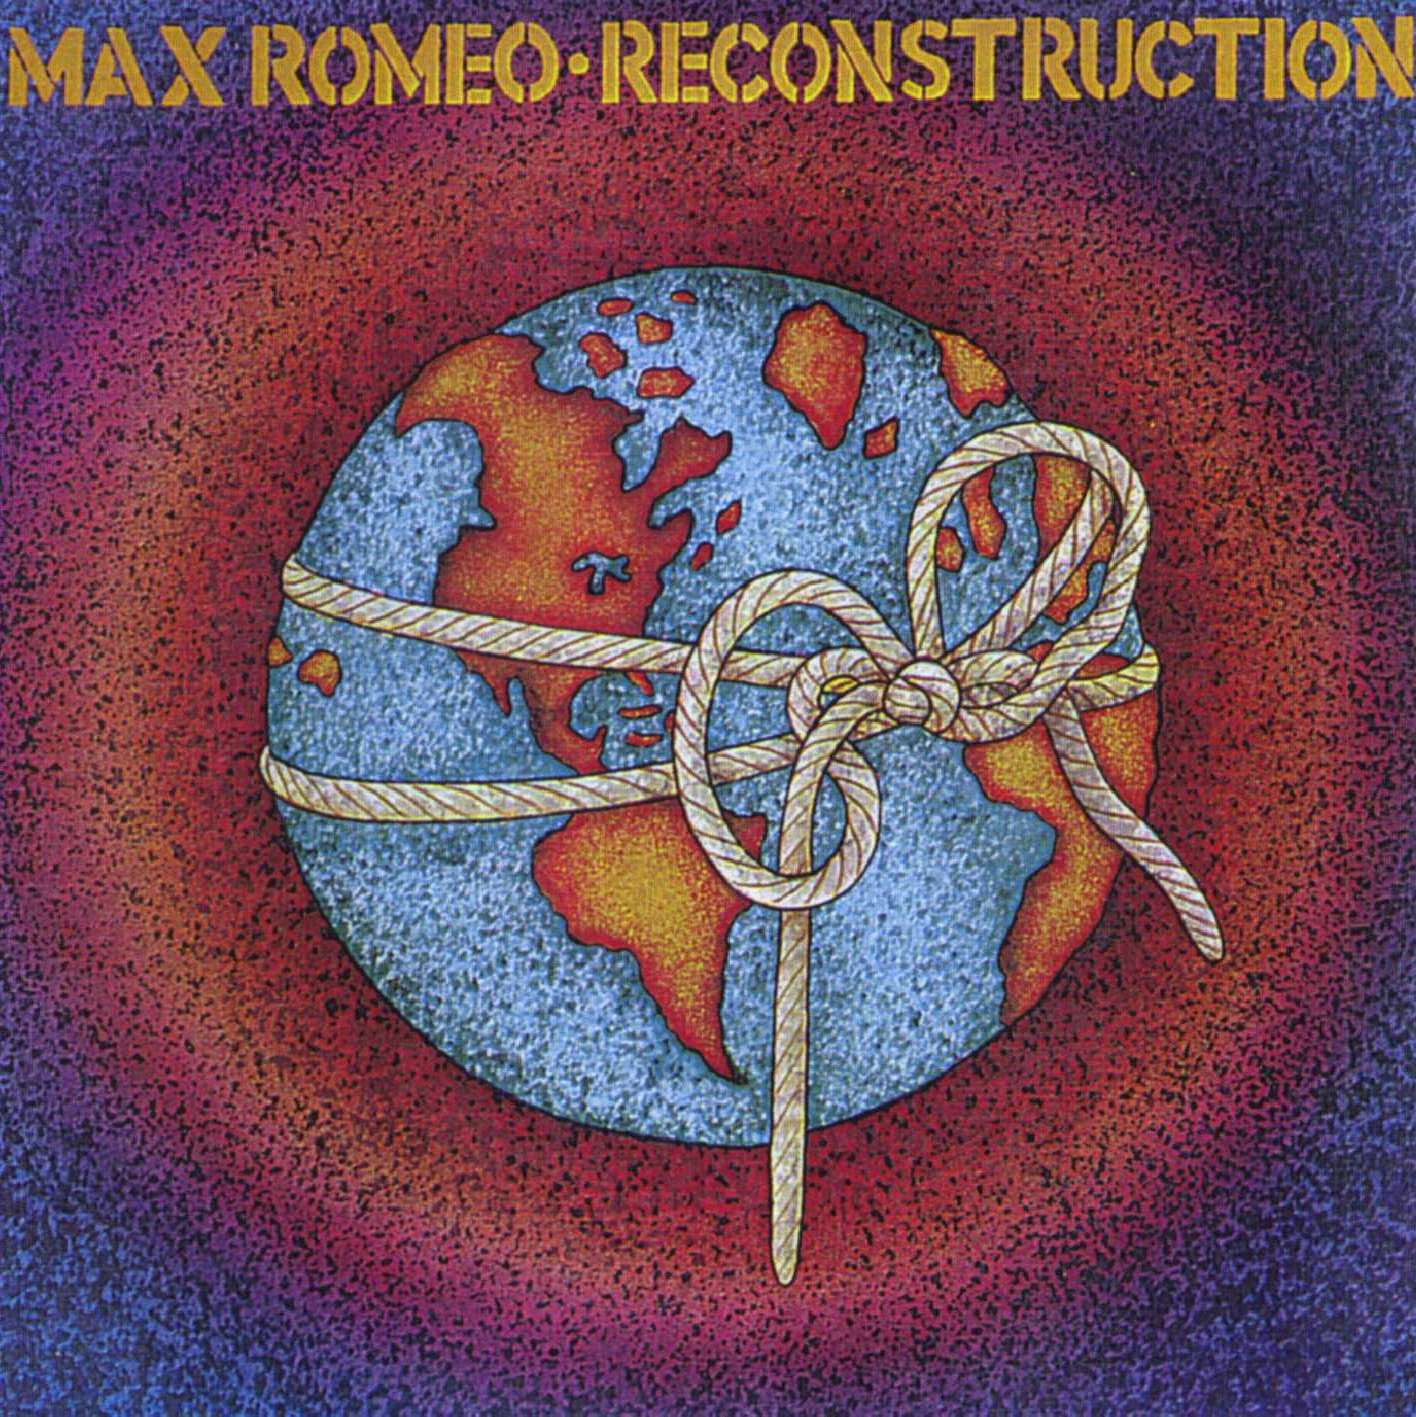 Max Romeo Reconstruction